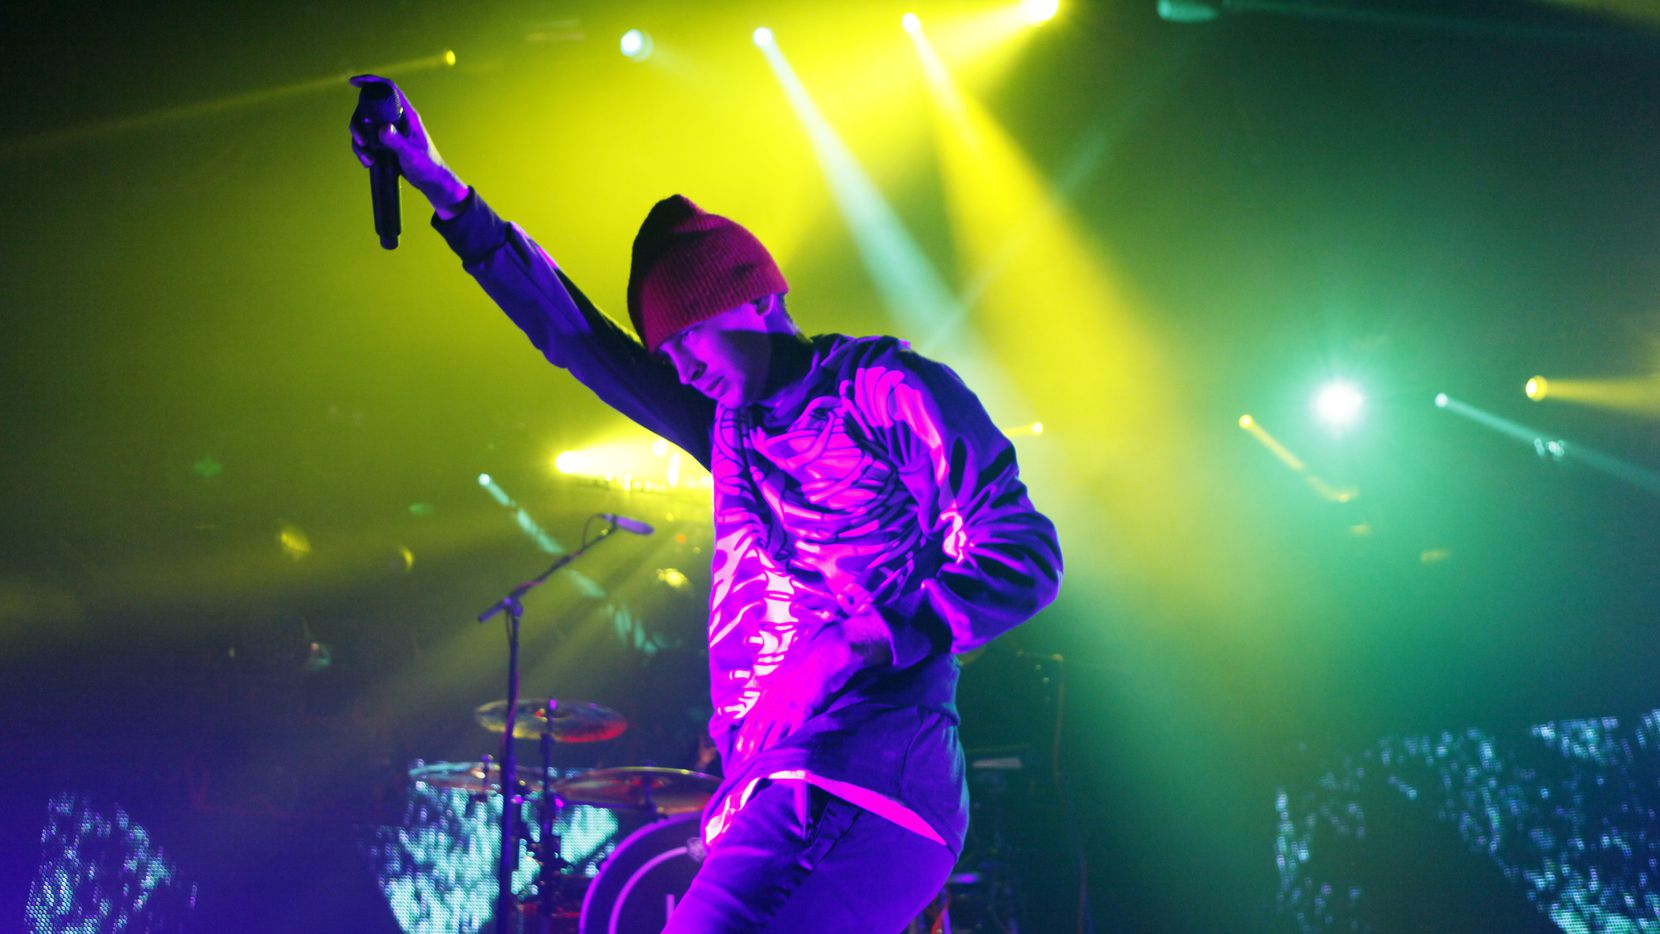 Twenty One Pilots lead singer Tyler Joseph performs at the South Side Ballroom, on Thursday, Oct. 1, 2015 in Dallas.